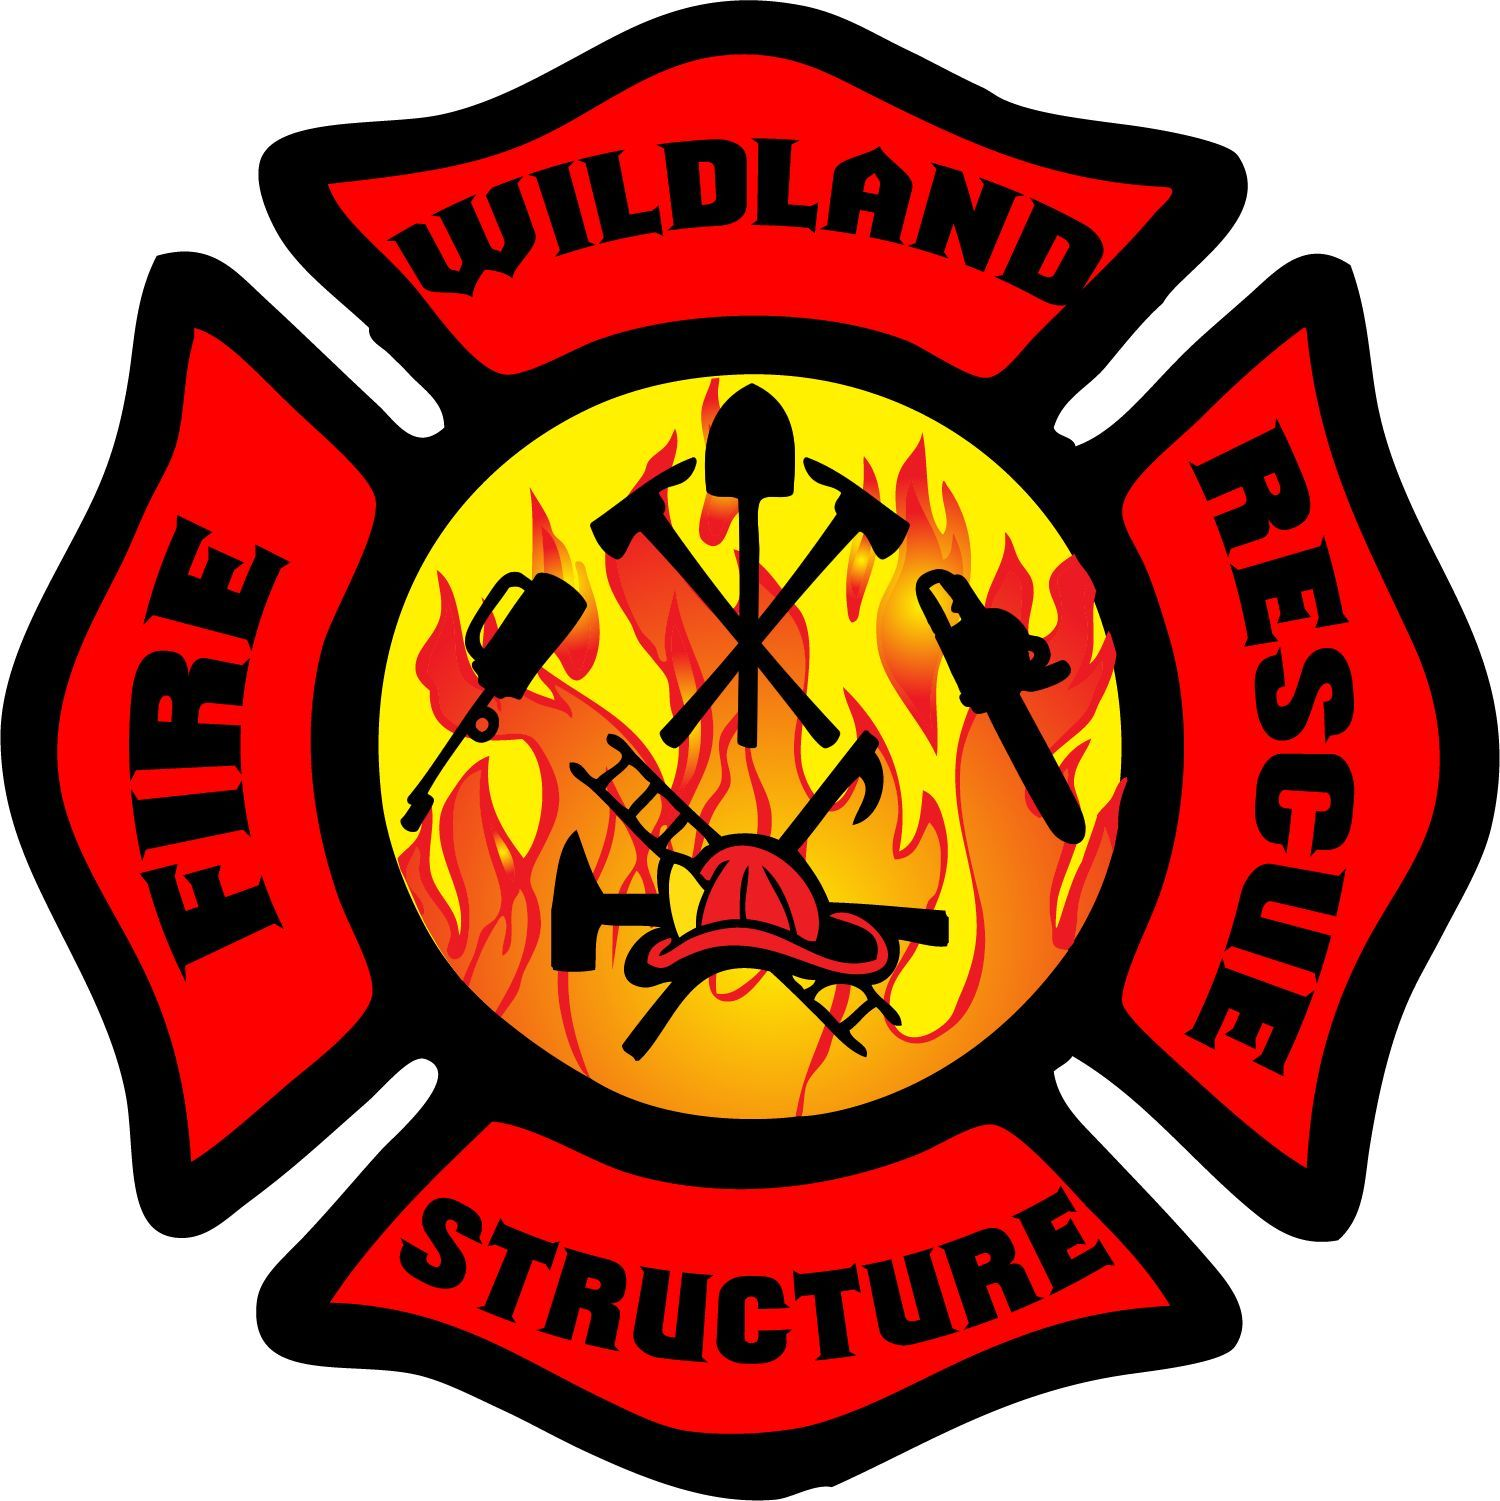 Wildland Firefighter Structure Firefighter Fire and Rescue